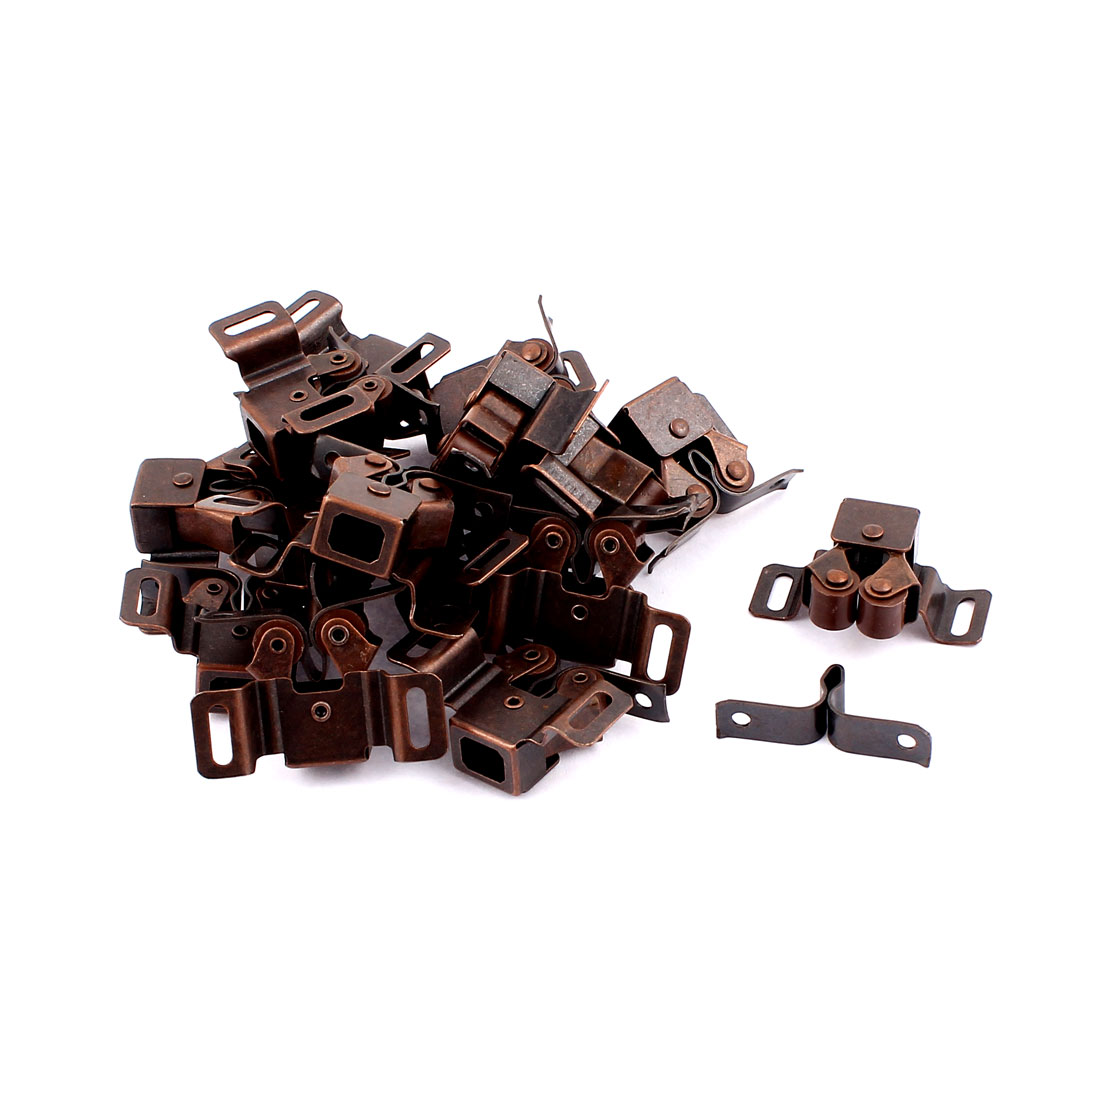 Cabinet Cupboard Door Double Ball Roller Catch Latch Lock Copper Tone 17pcs